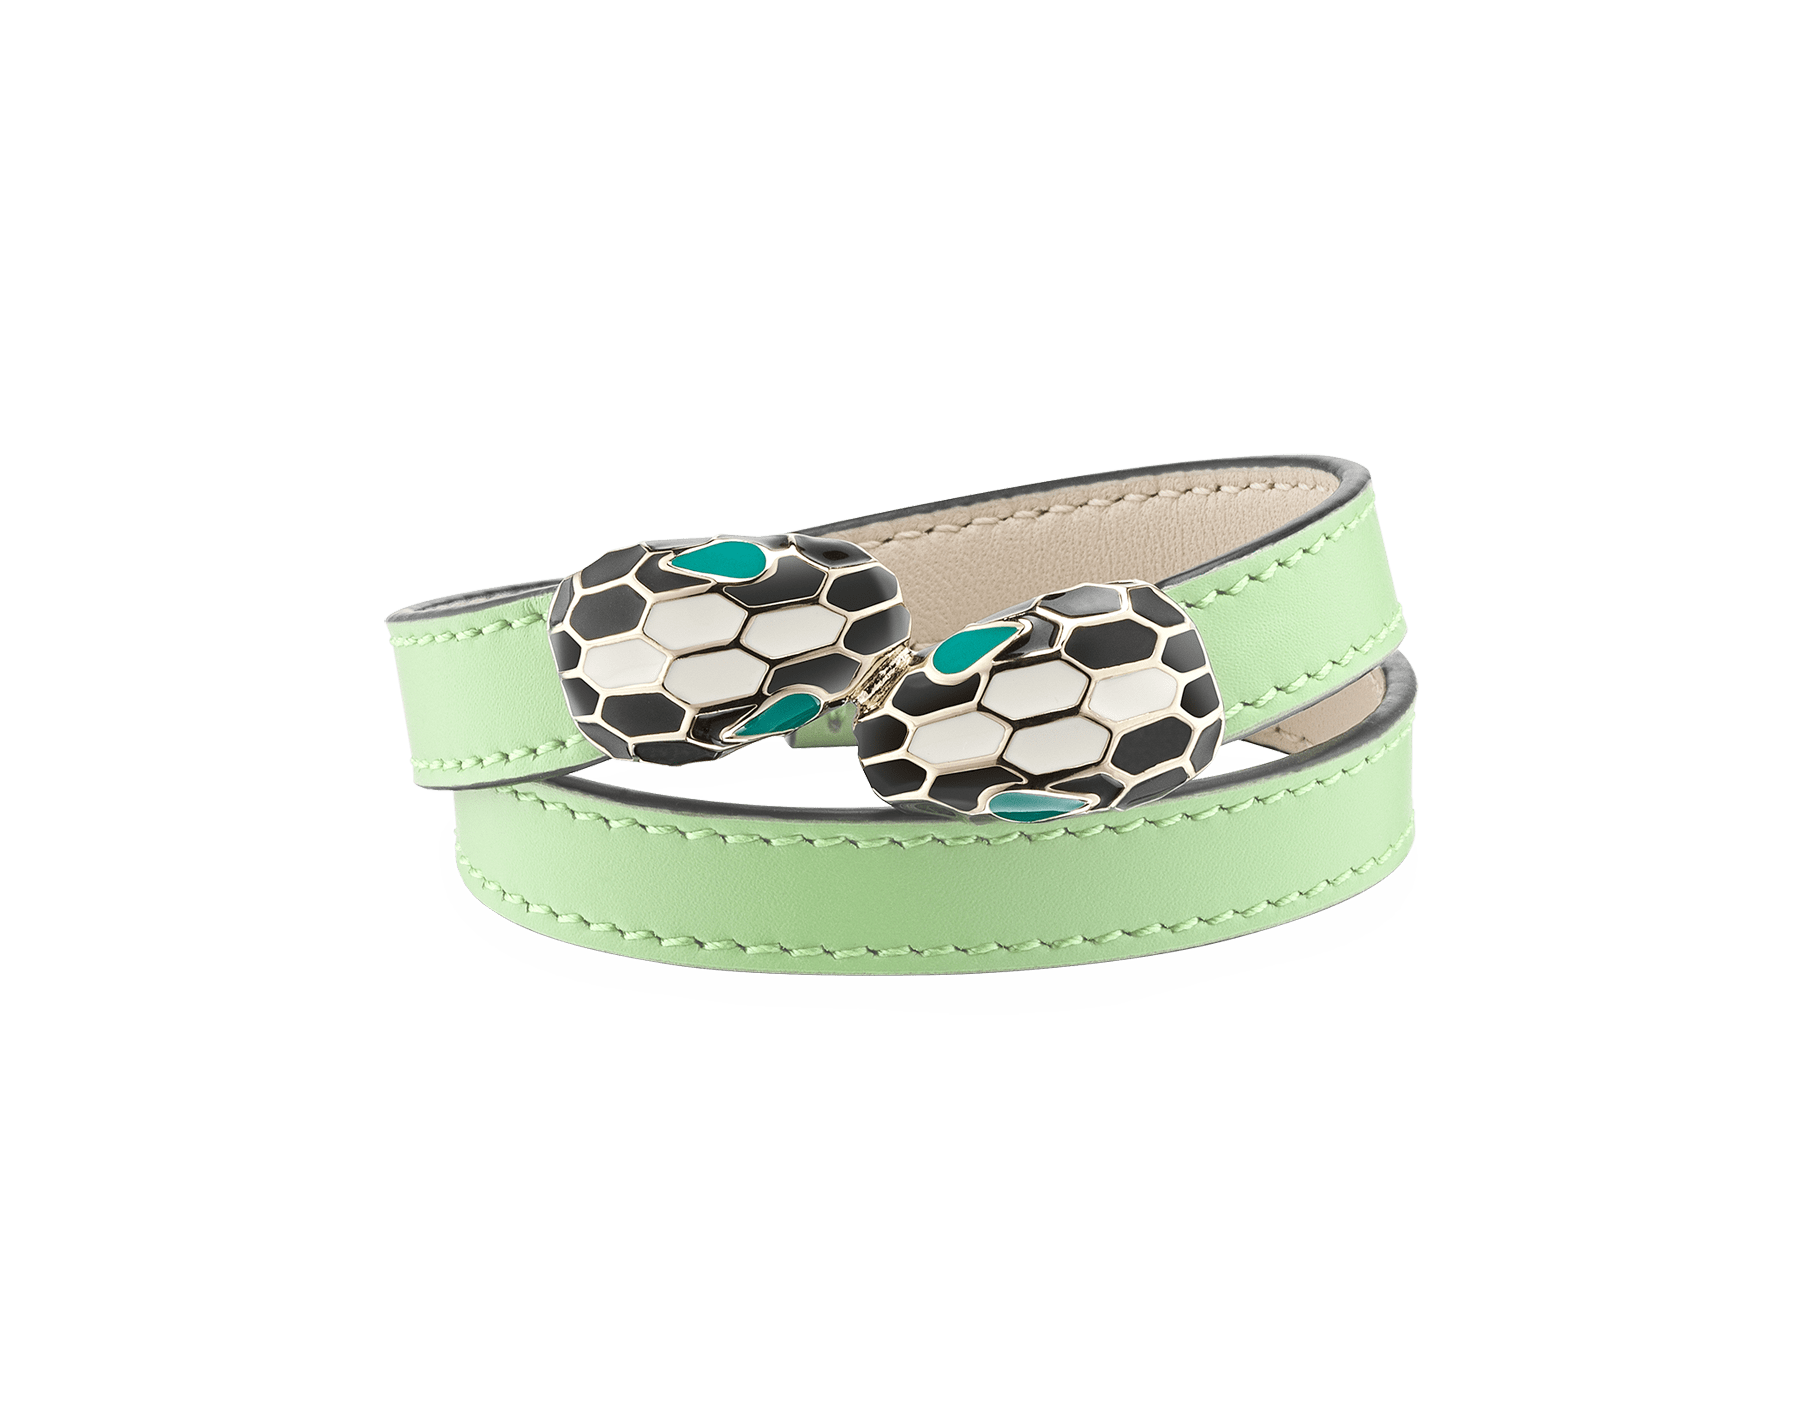 Serpenti Forever multi-coiled bracelet in mint calf leather, with light gold plated brass hardware. Iconic contraire snakehead décor in black and white agate enamel, with emerald green enamel eyes. MCSerp-CL-M image 1